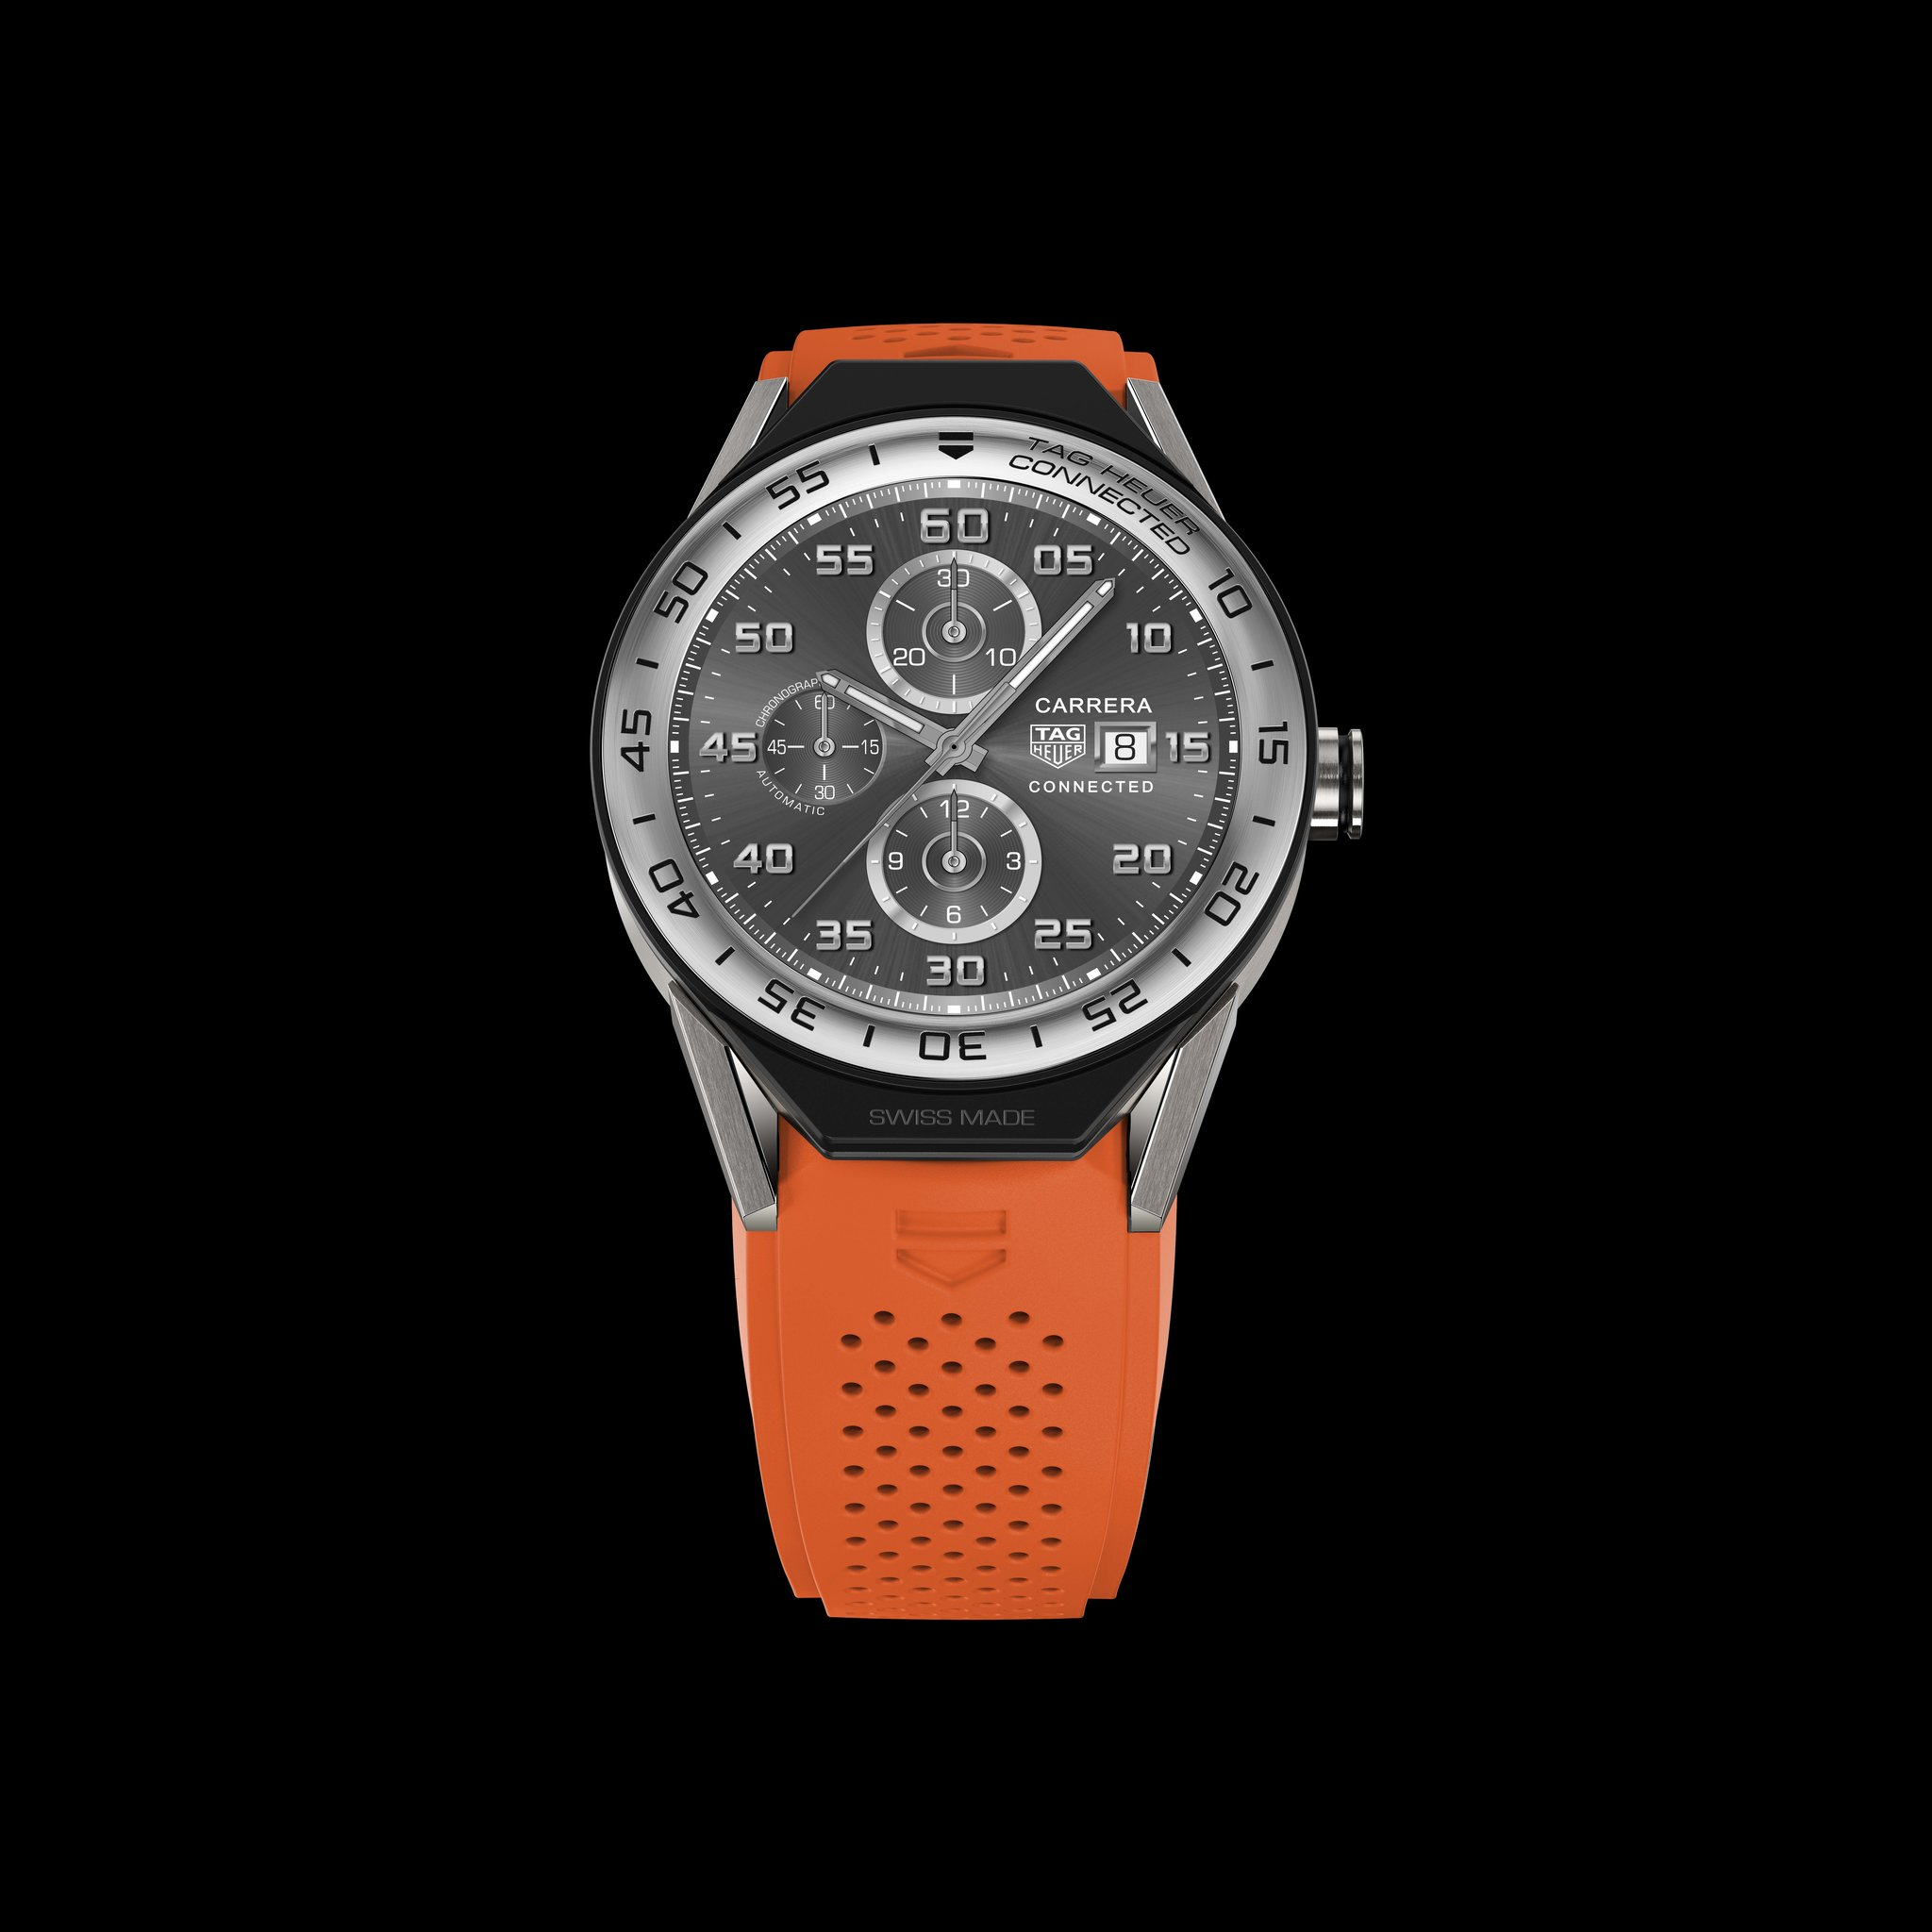 tag heuer connected manual pdf